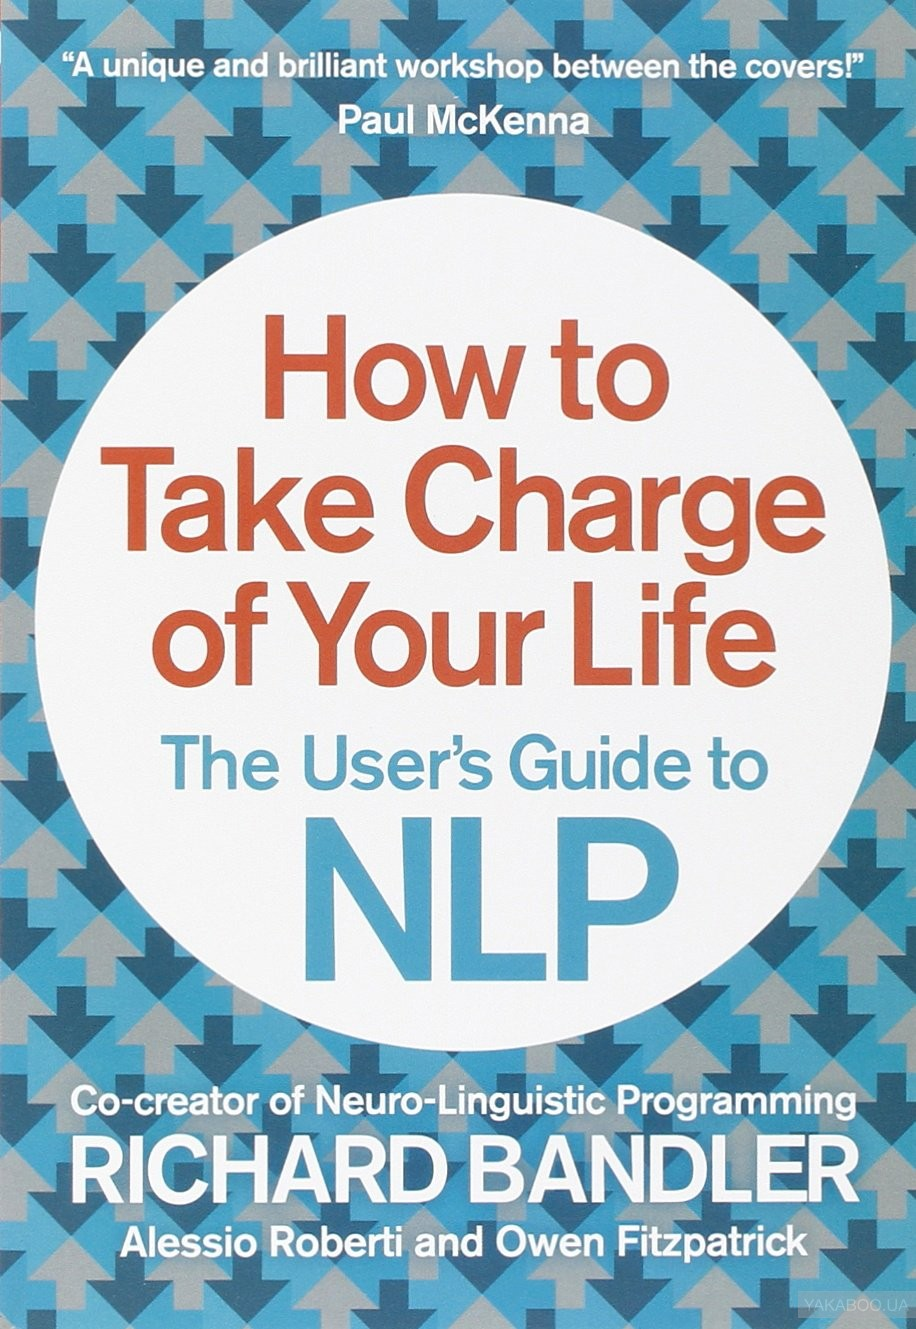 How to Take Charge of Your Life: The Users Guide to NLP